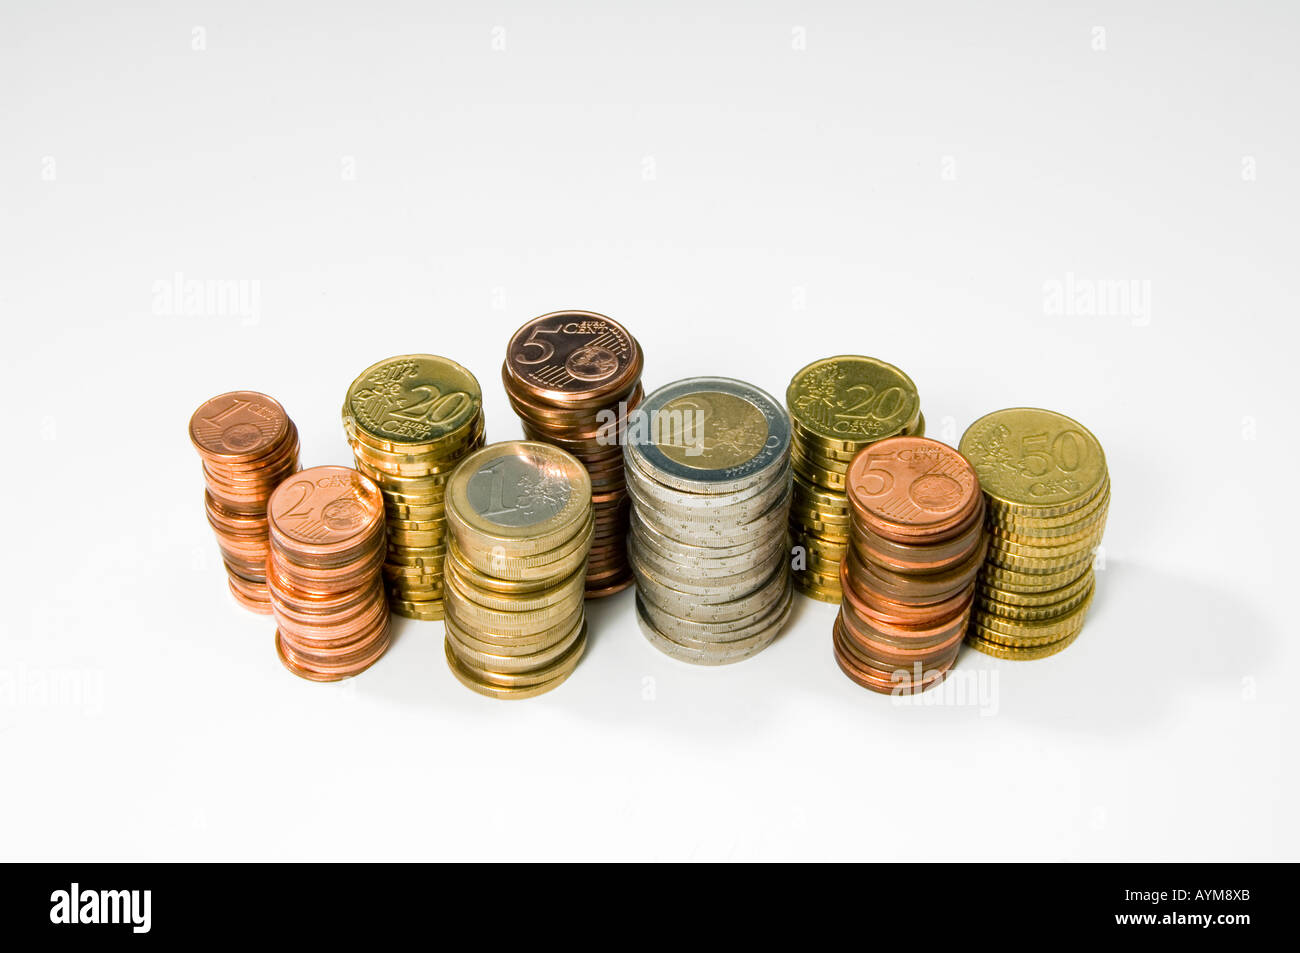 Several piles of assorted Euro coins - Stock Image